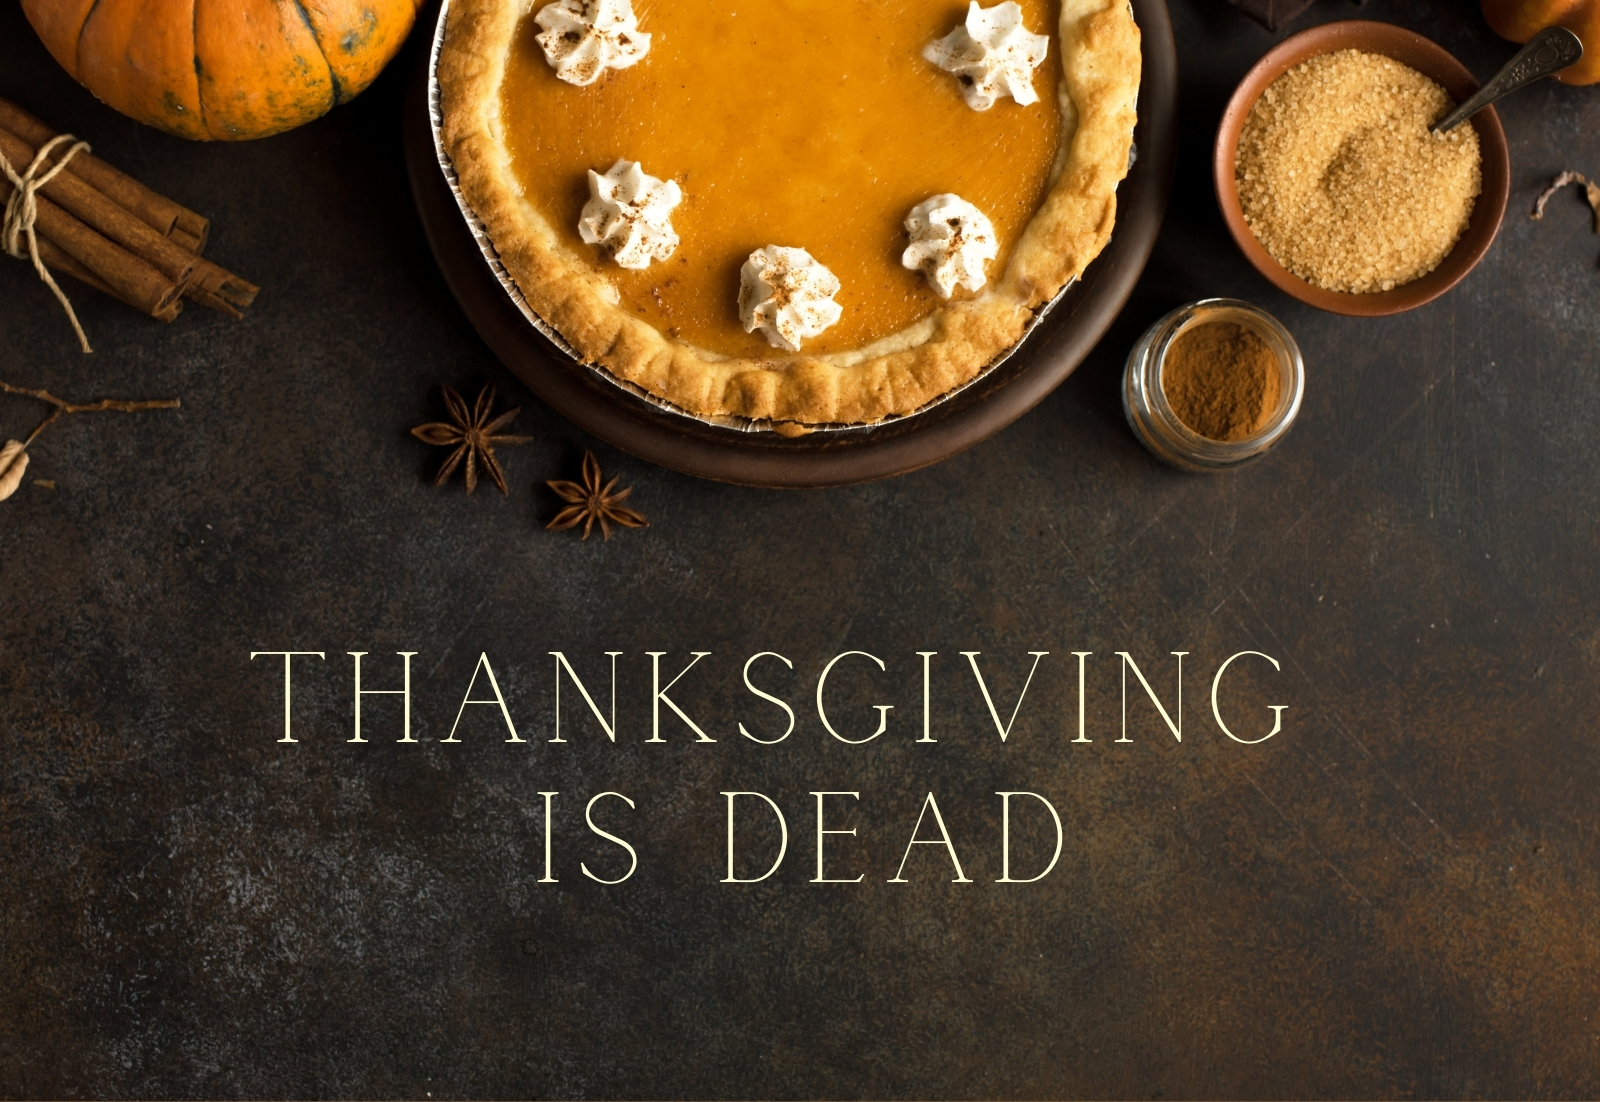 Thanksgiving is dead